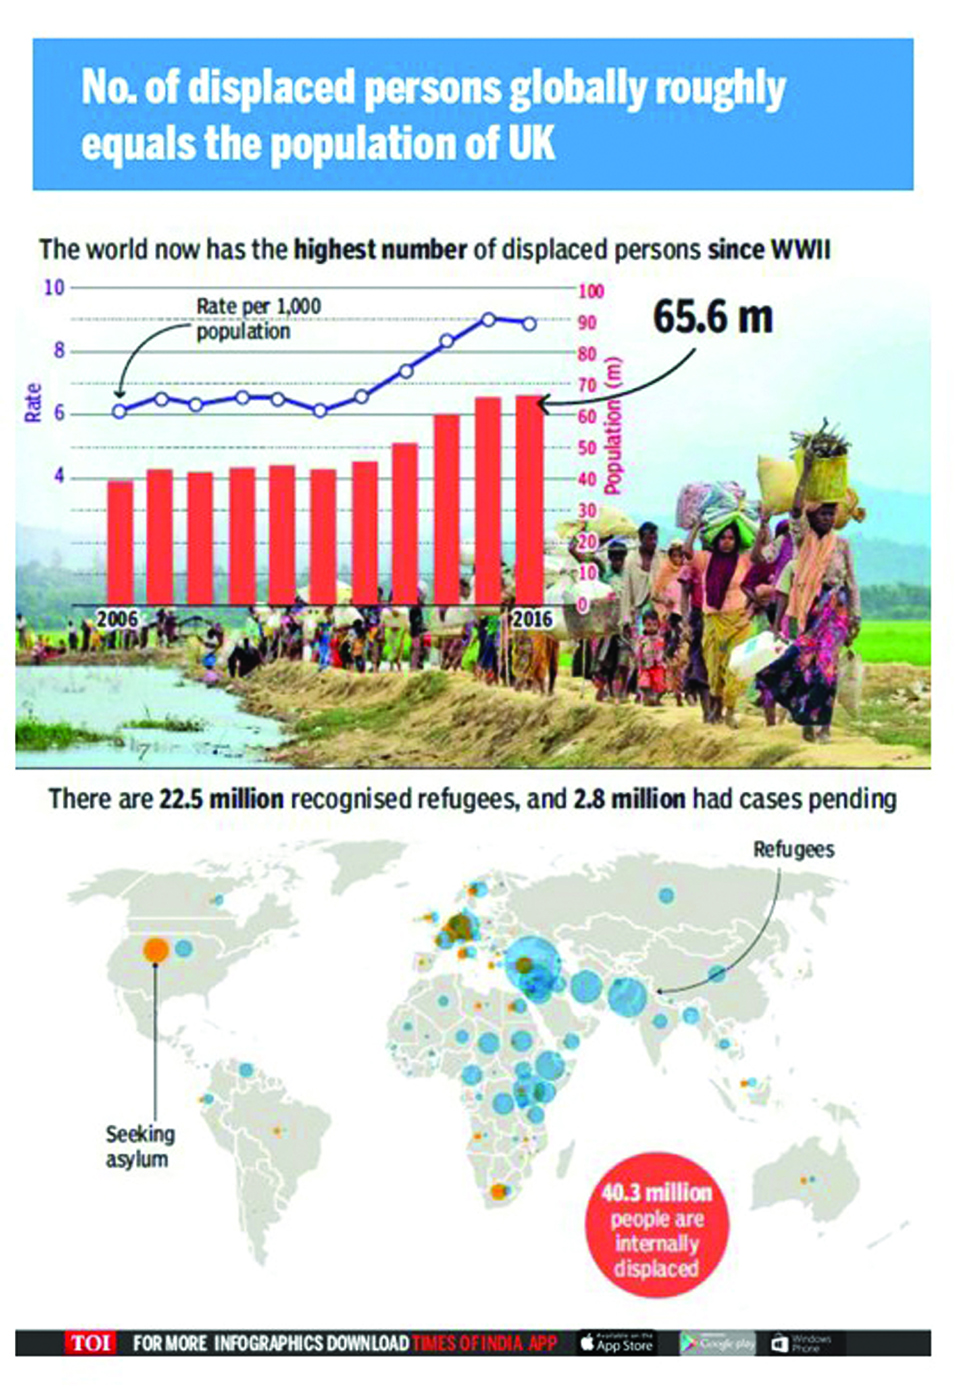 Infographics: No. of displaced persons globally roughly equals population of UK